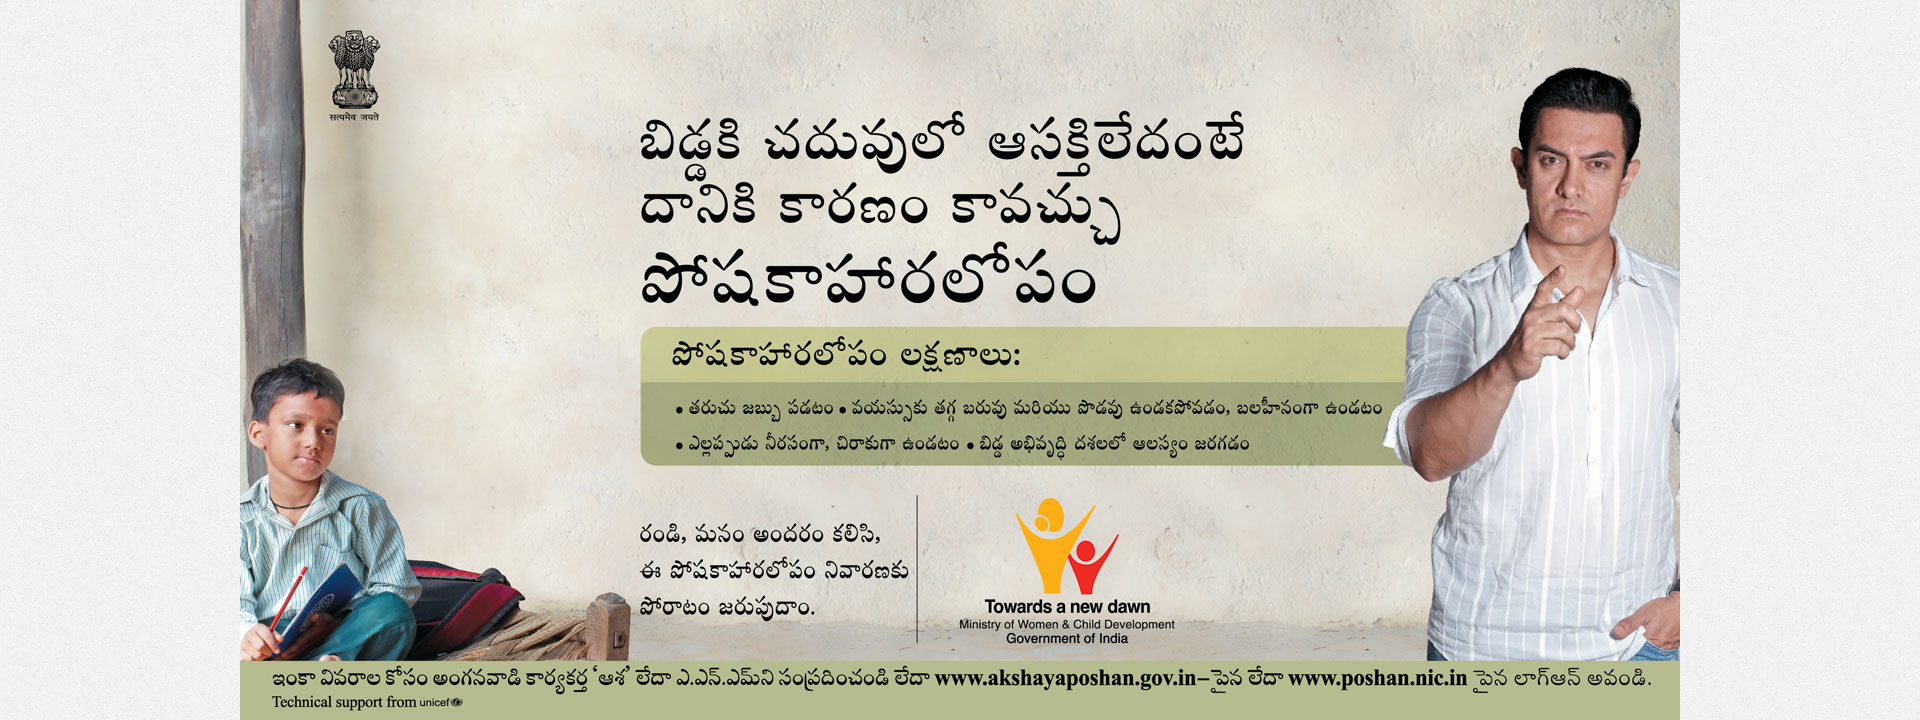 importance of education essay in telugu 91 121 113 106 importance of education essay in telugu